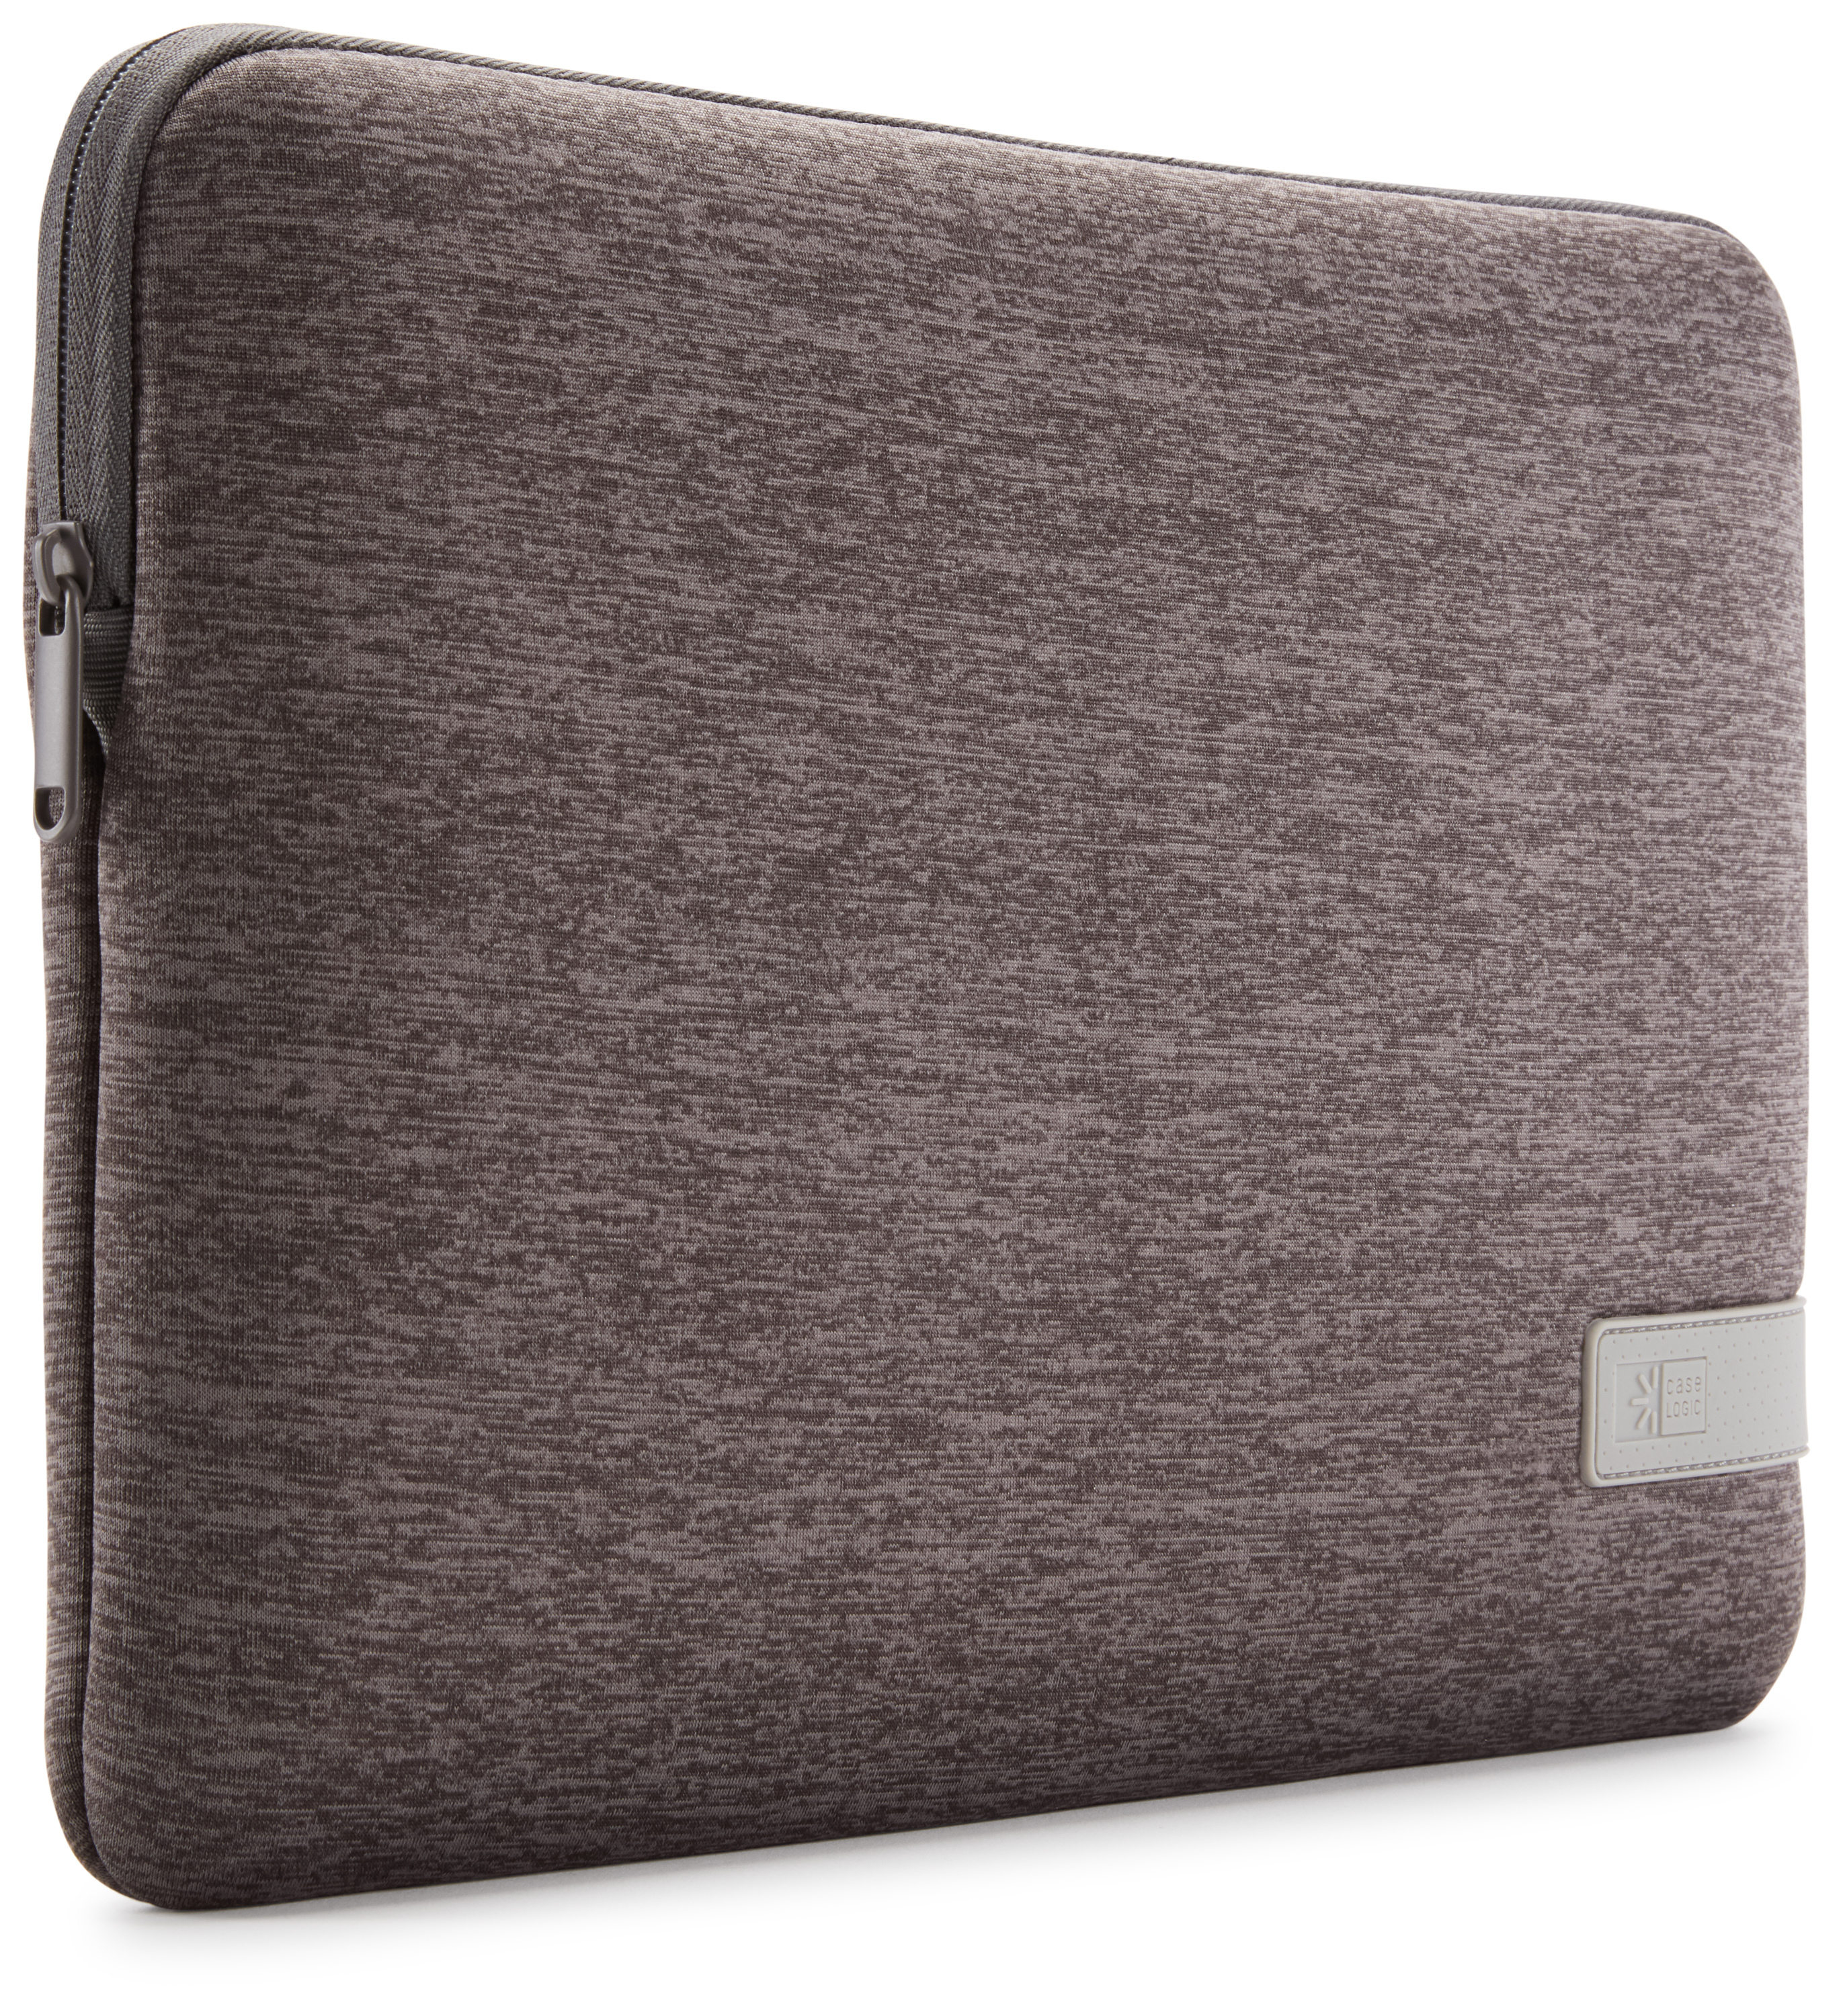 "Case Logic Reflect 13"" Laptop Sleeve Graphite"